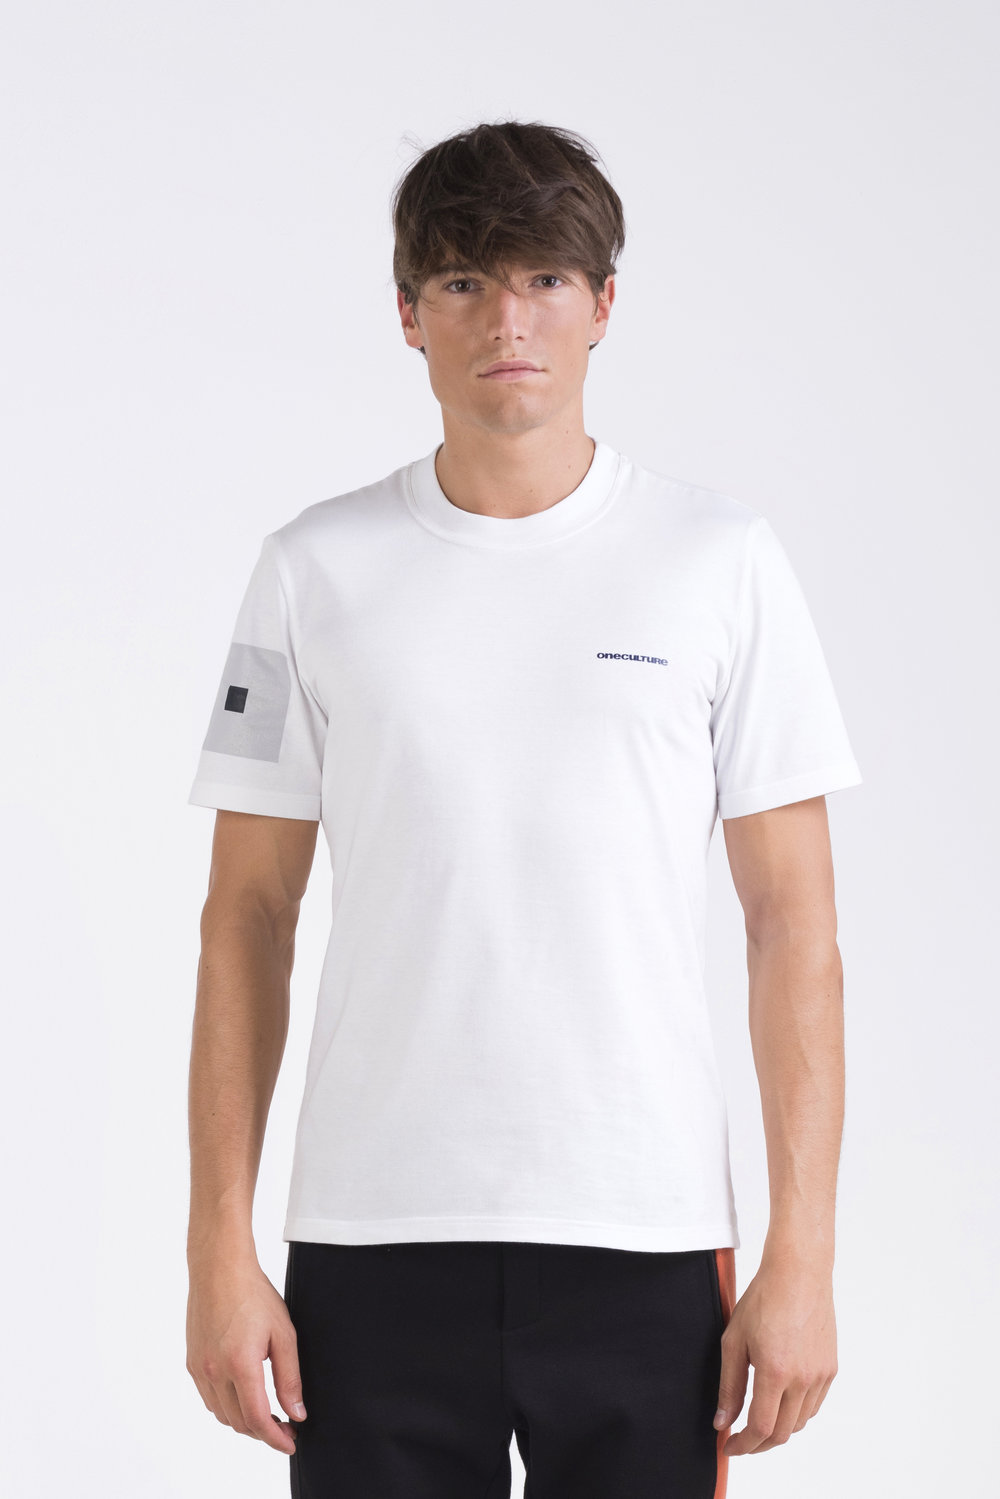 oneculture logo tee 2.jpg